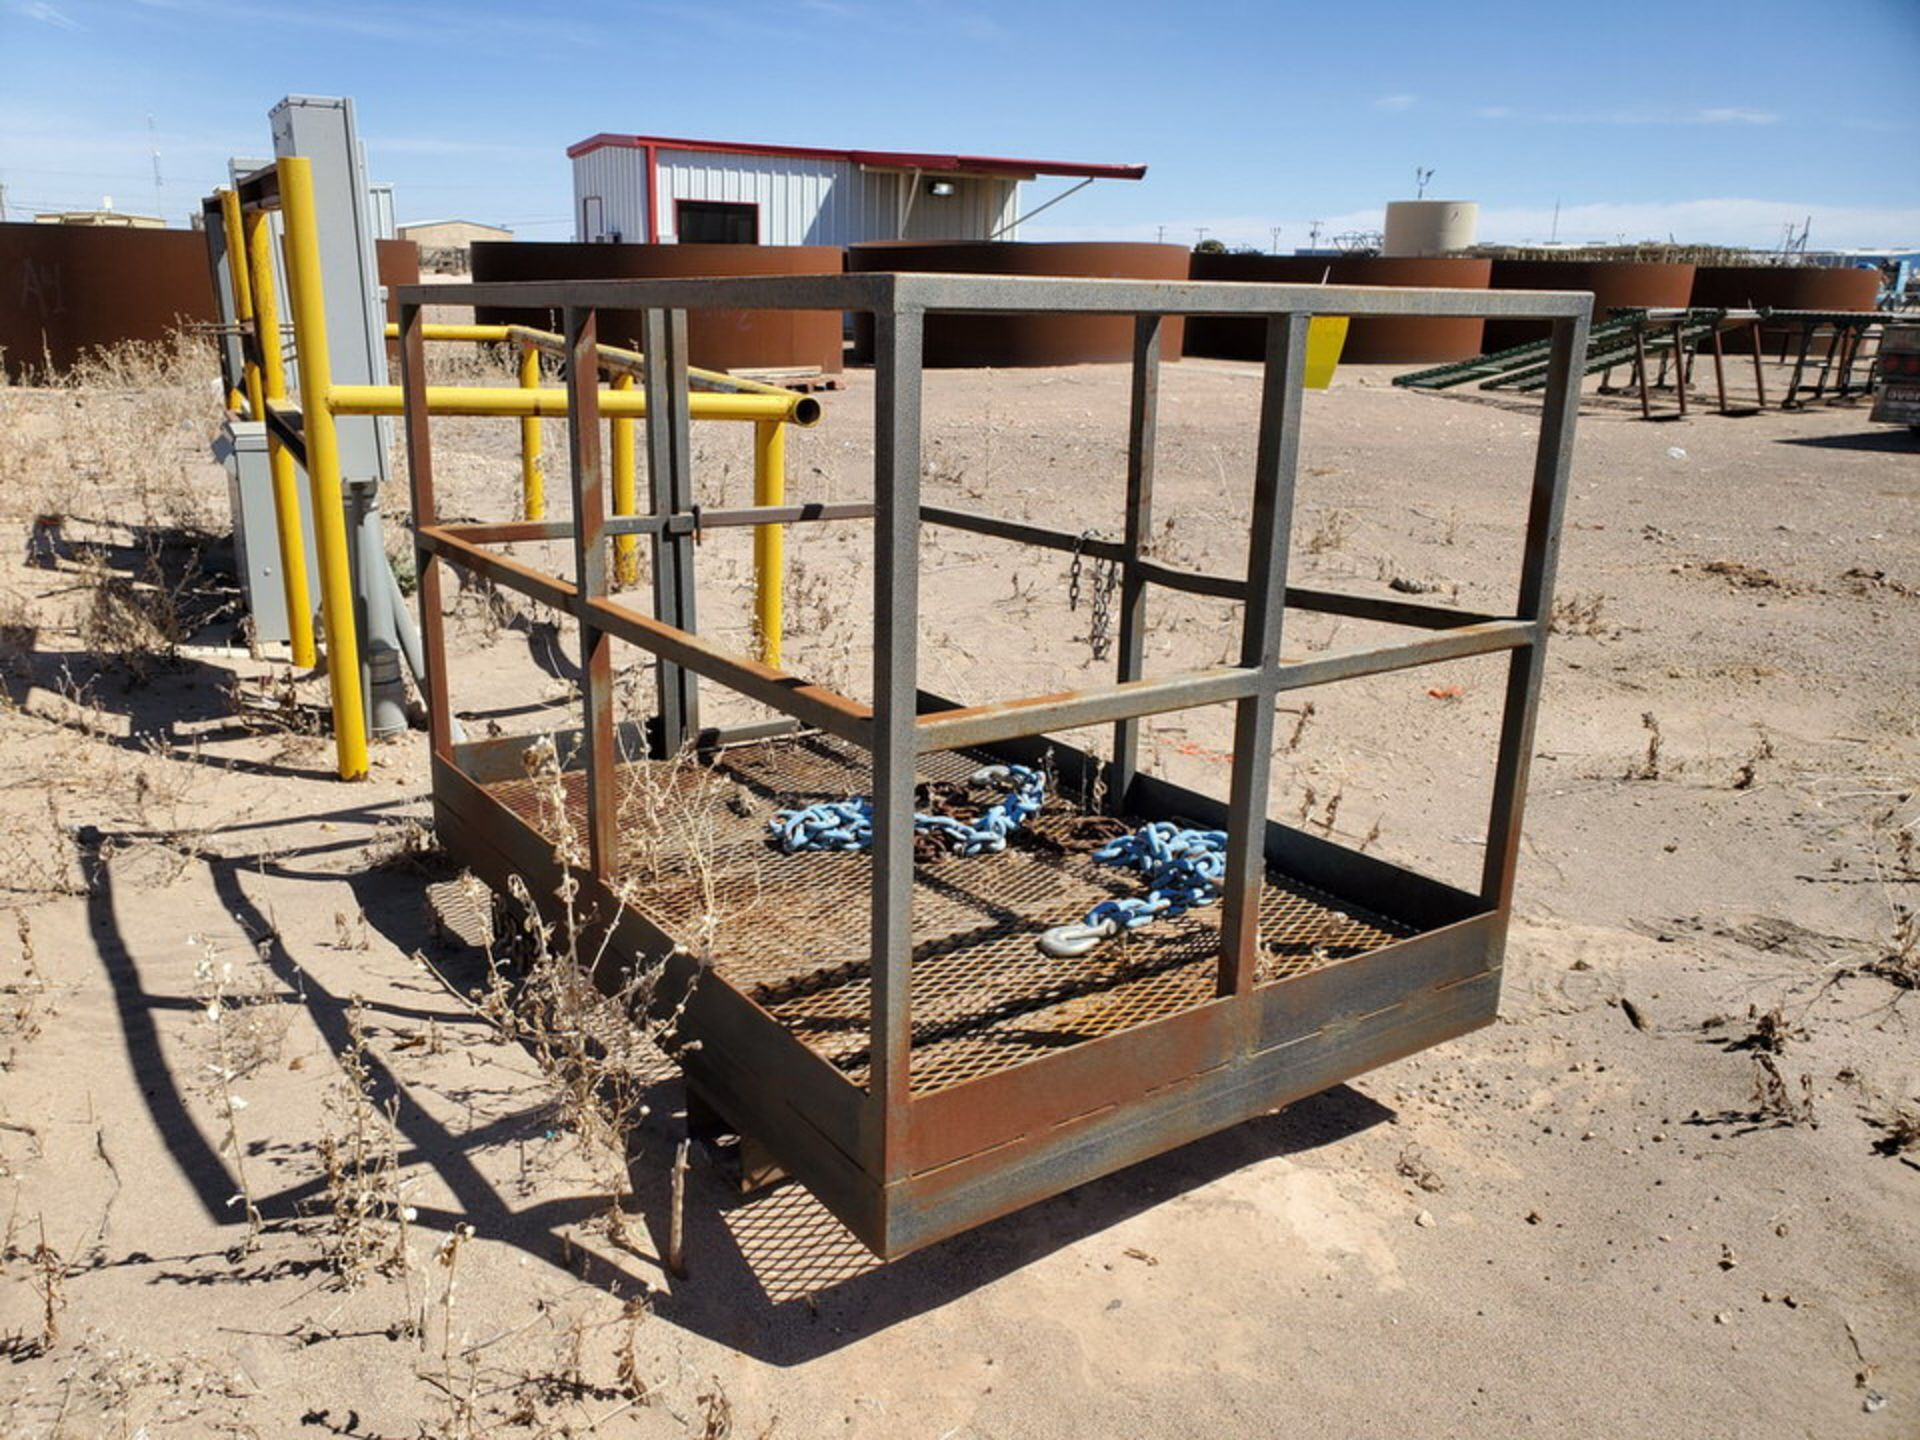 """Forklift Stl Work Basket 72"""" x 48"""" x 50""""H; W/ Lifting Chains - Image 4 of 7"""